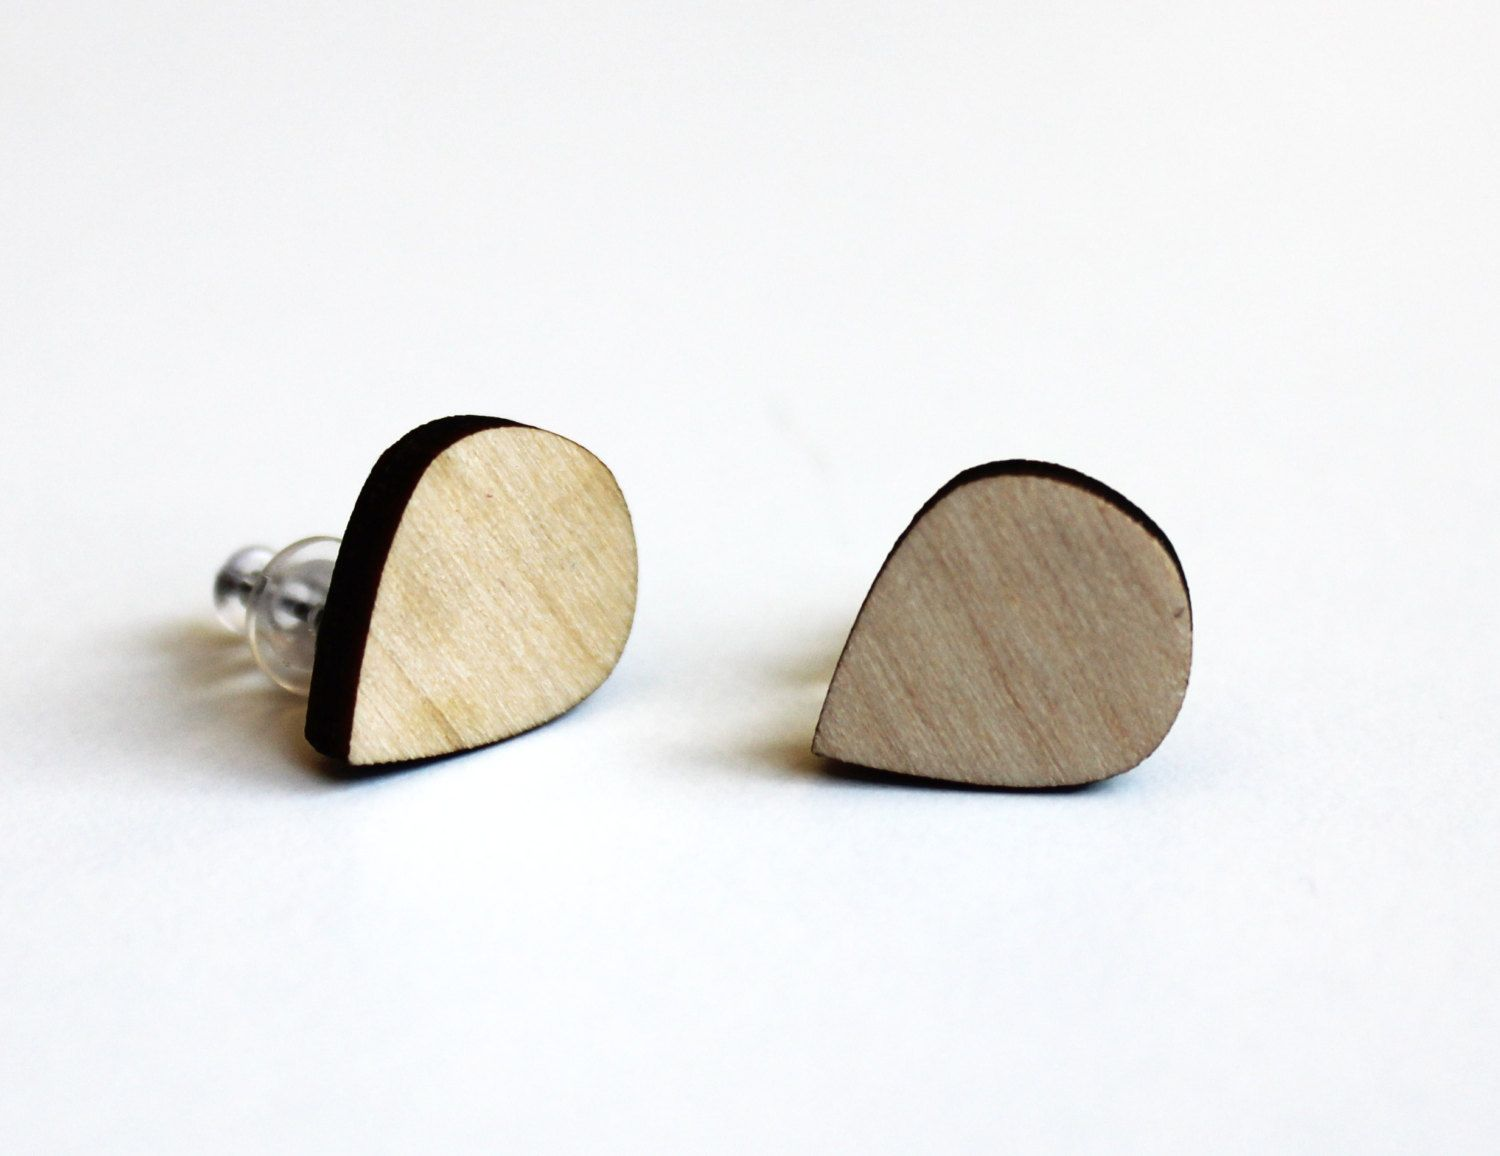 Wooden Earrings Natural Earrings Natural Jewelry Wooden - Edelstenen Den Bosch